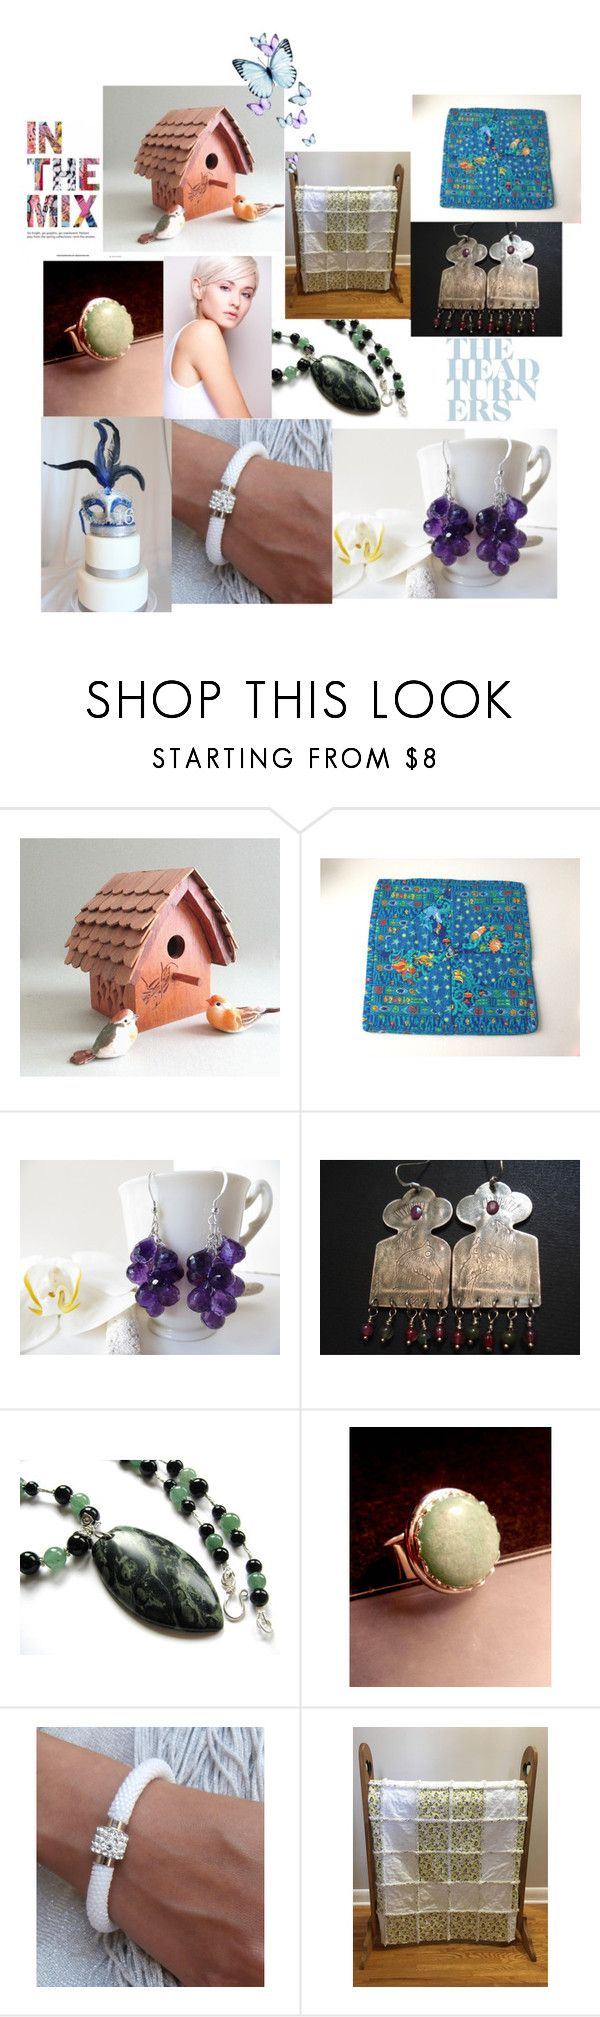 """""""The Head Turners by A Floral Affair on Etsy"""" by afloralaffair-1 ❤ liked on Polyvore featuring interior, interiors, interior design, home, home decor, interior decorating, Masquerade and vintage"""